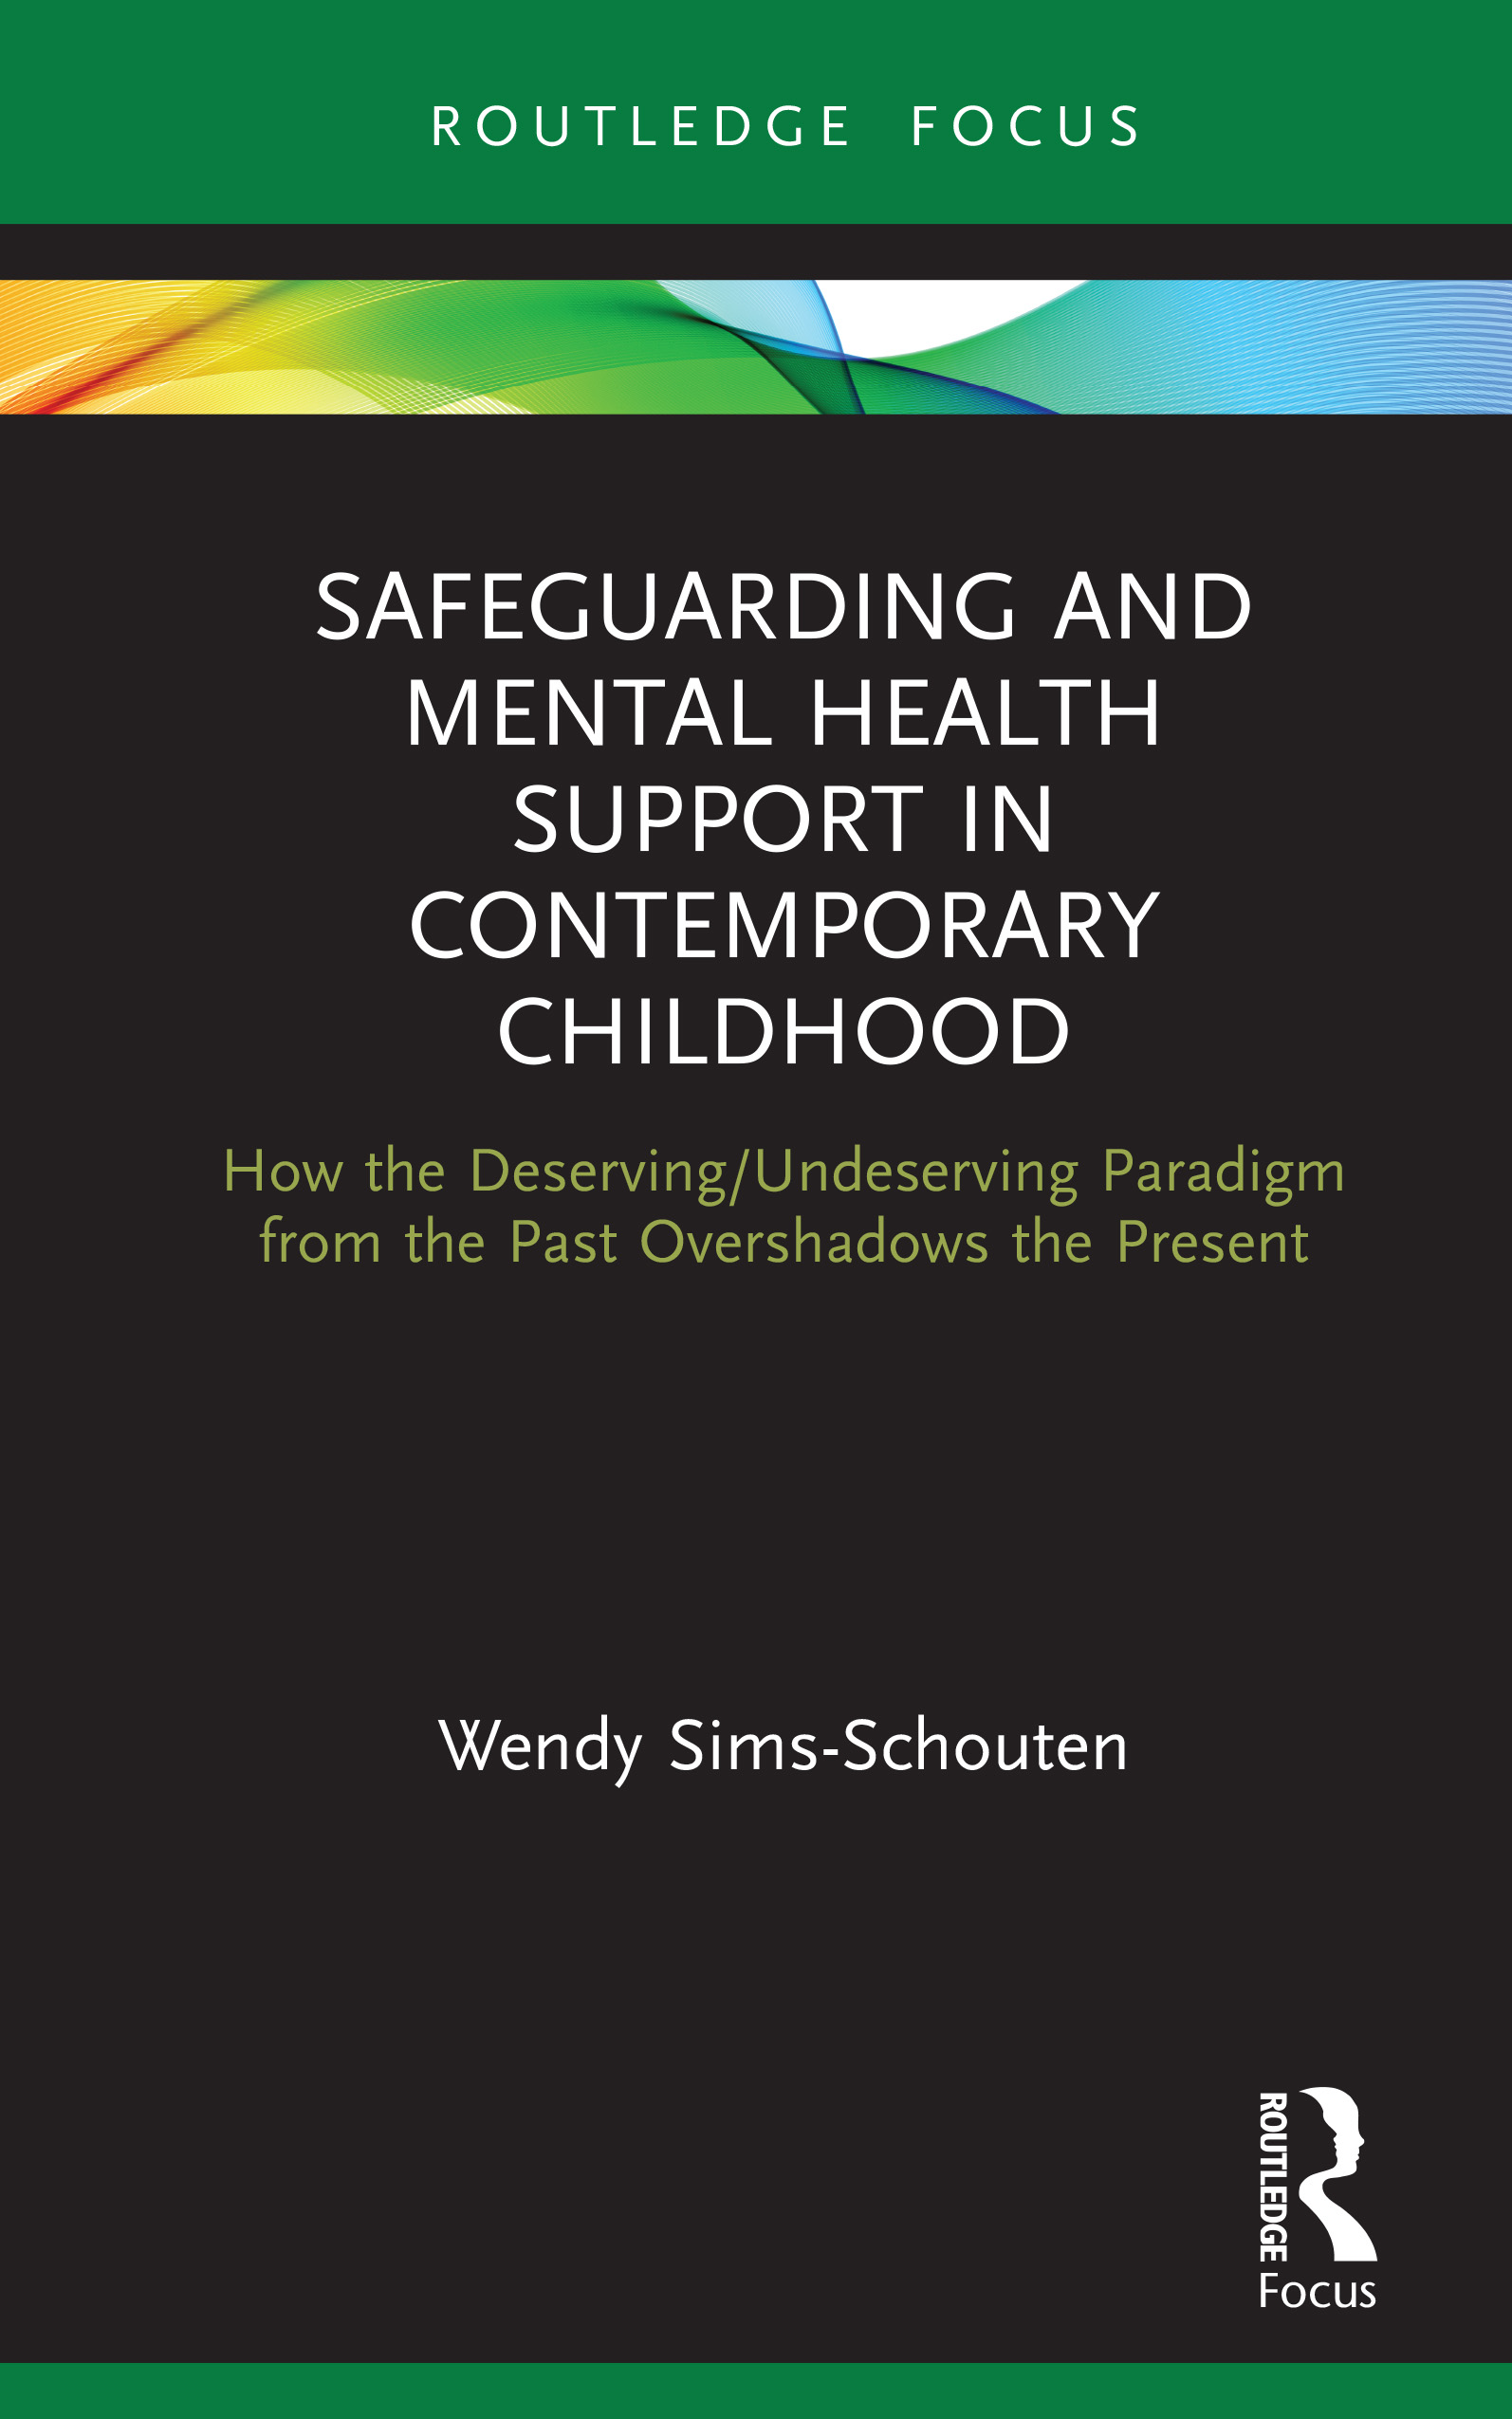 Safeguarding and Mental Health Support in Contemporary Childhood